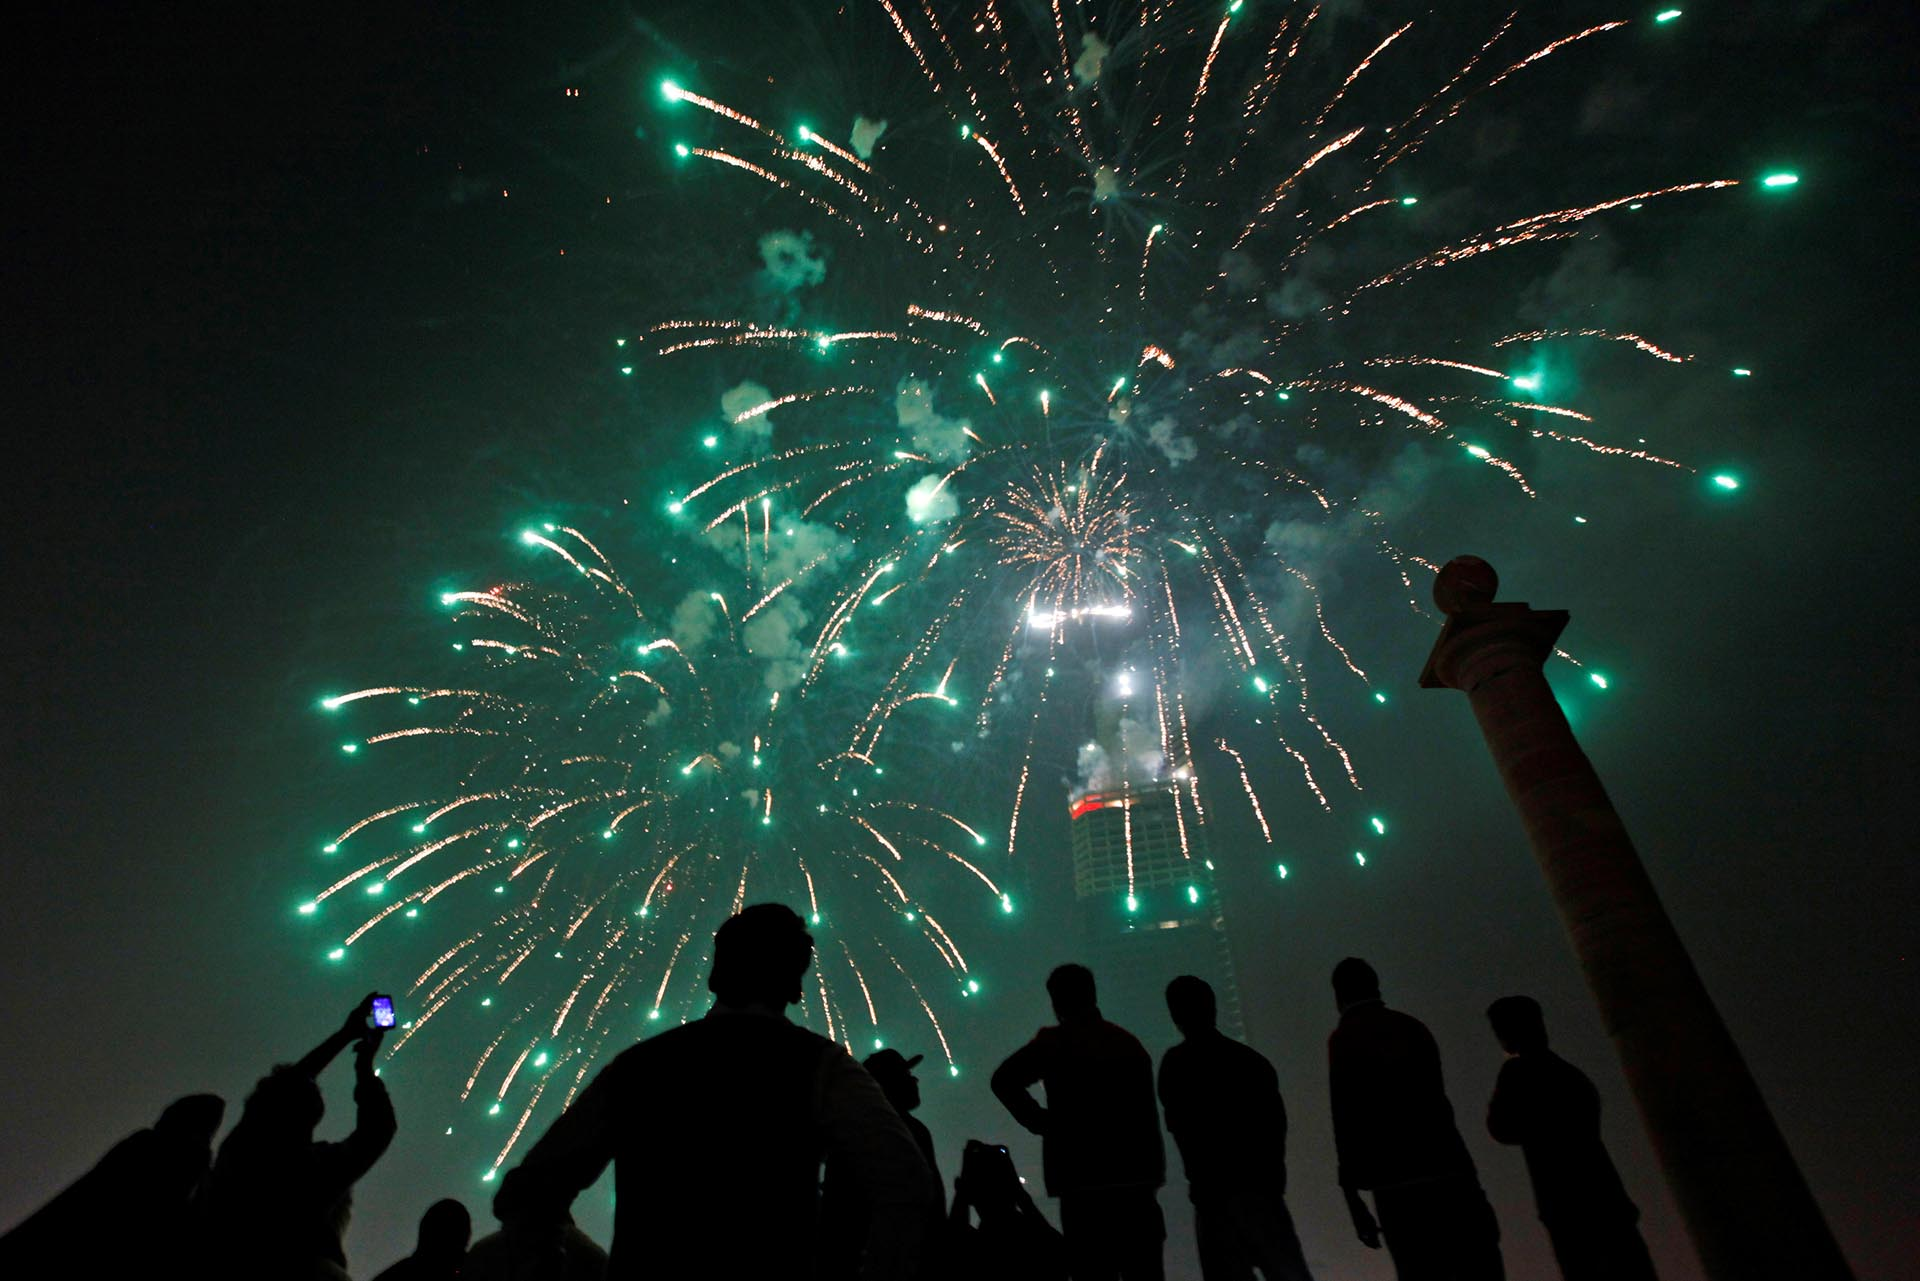 People gather to observe fireworks in celebration of the New Year in Karachi, Pakistan, January 1, 2017. REUTERS/Akhtar Soomro